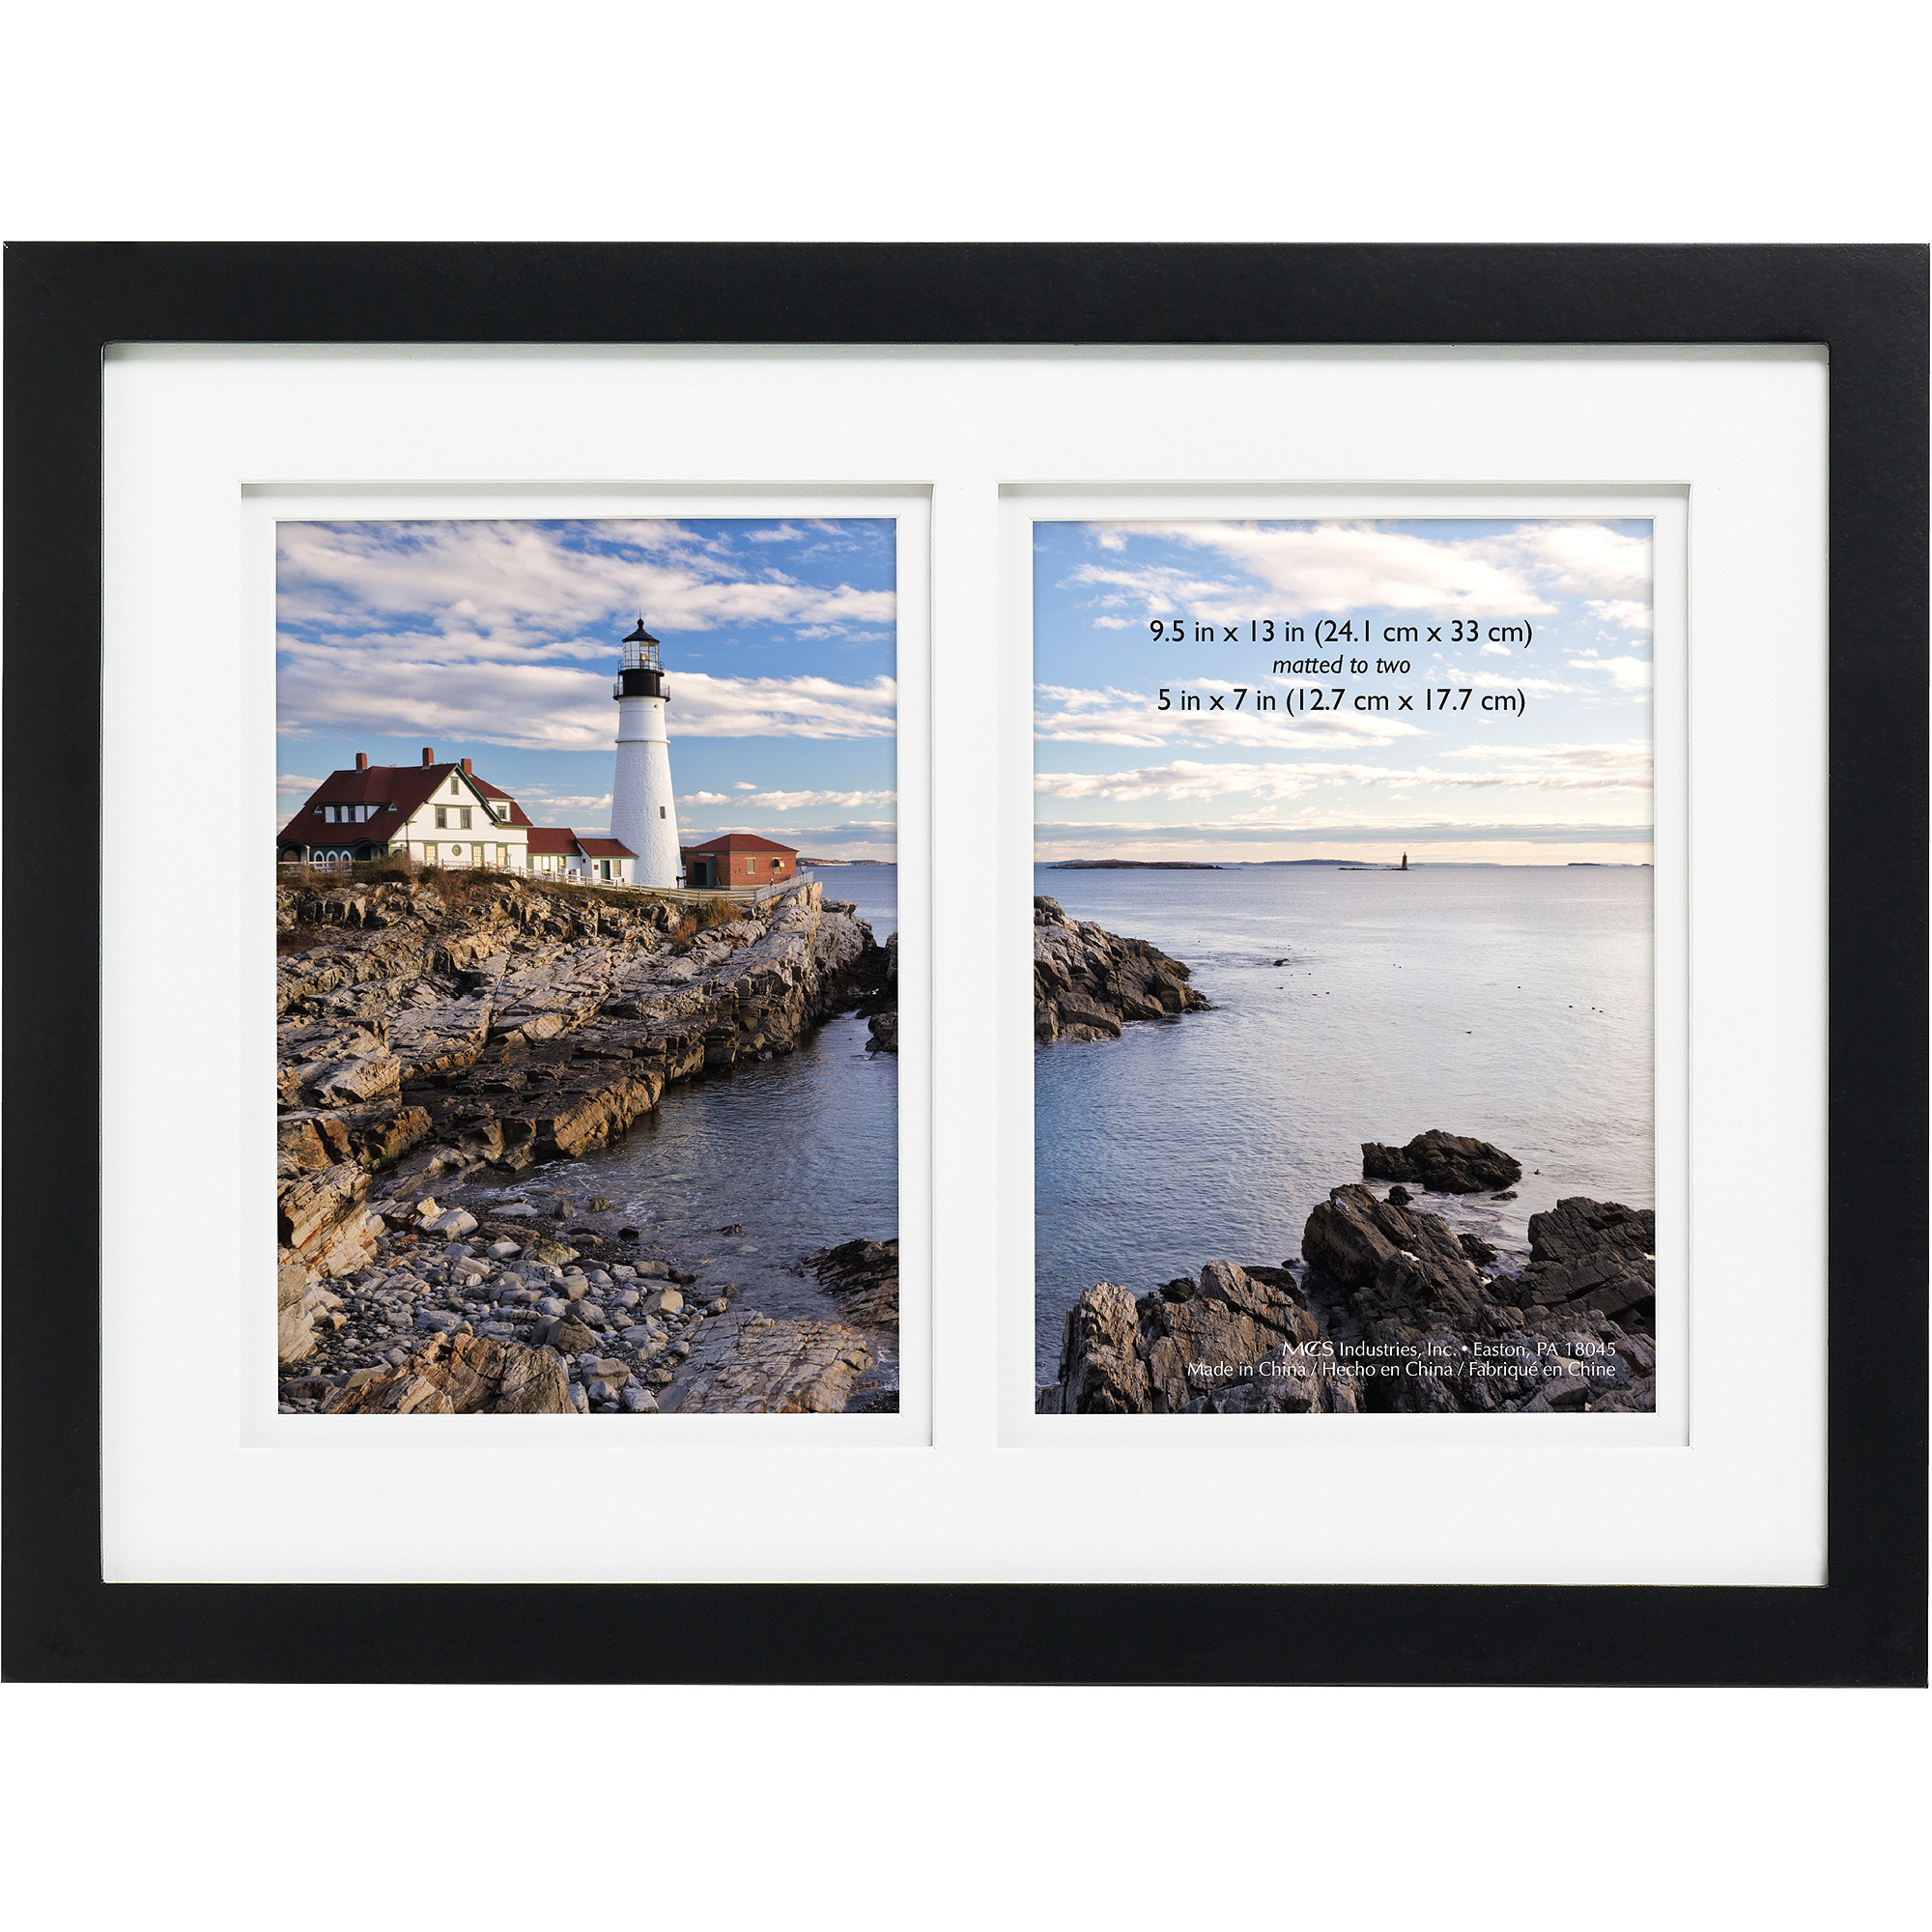 Better Homes And Gardens 14x18 11x14 Wide Gallery Frame